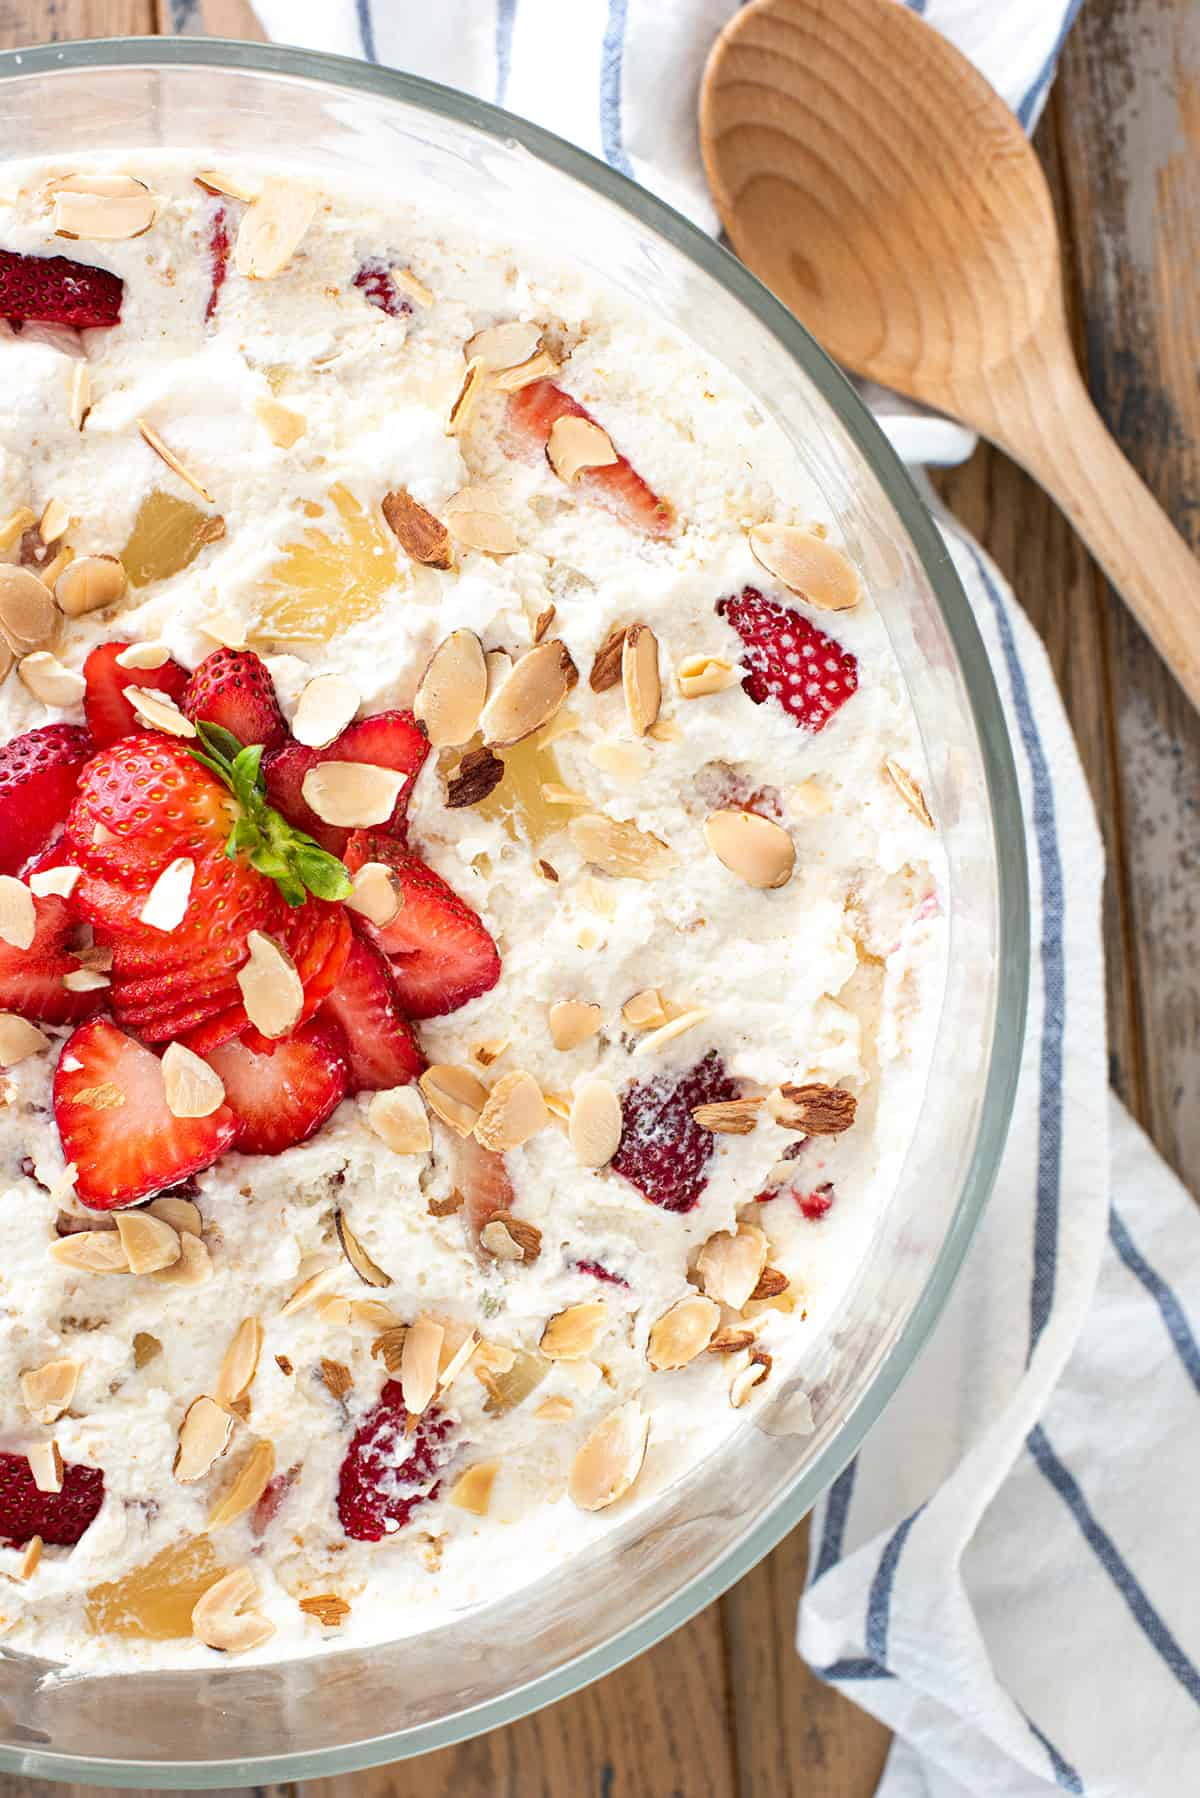 Punch Bowl Cake potluck dessert with whipped topping, nuts and strawberries in glass trifle bowl